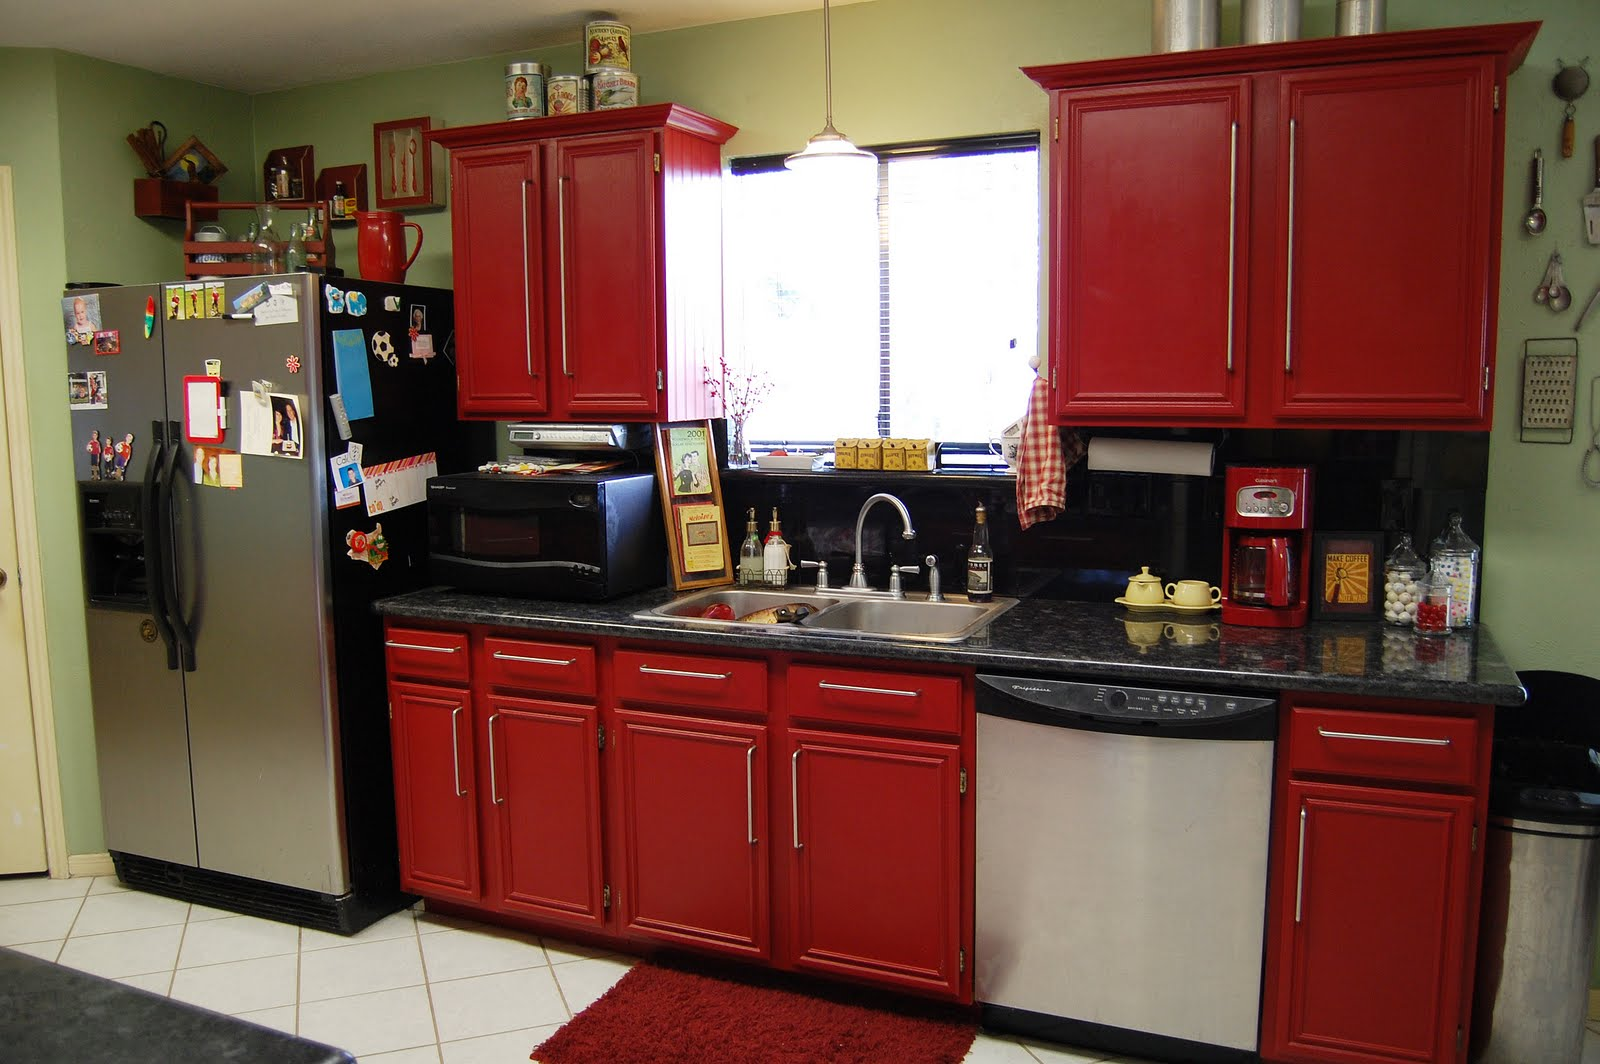 Exquisite Interior Design with Red Kitchen Cabinets also Dark Countertop plus Good Backsplash